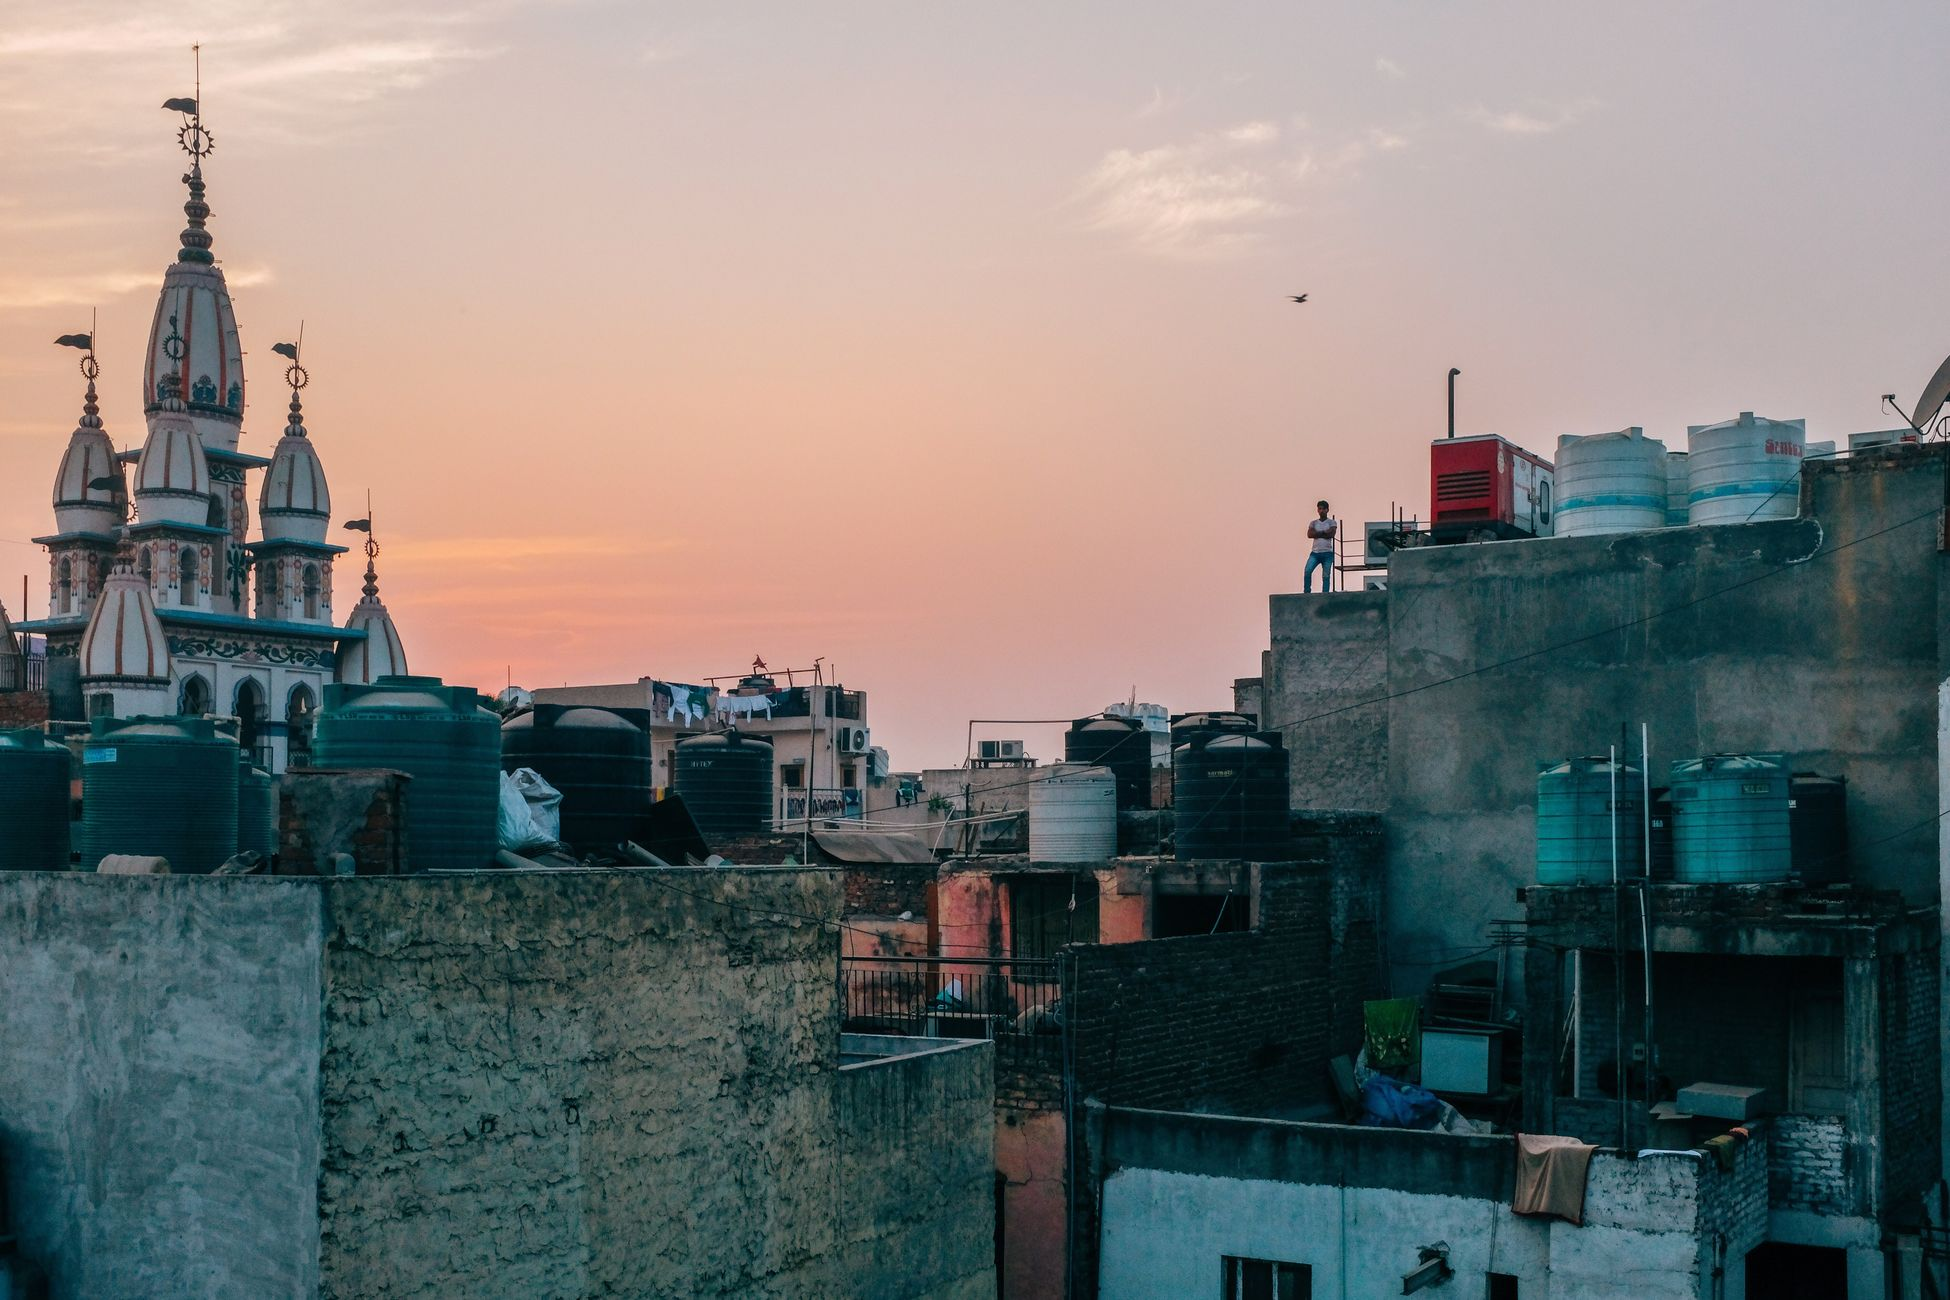 New Dehi. India. 2016. Architecture Building Exterior Dome City Sunset Travel Destinations Traveling Home For The Holidays Finding New Frontiers